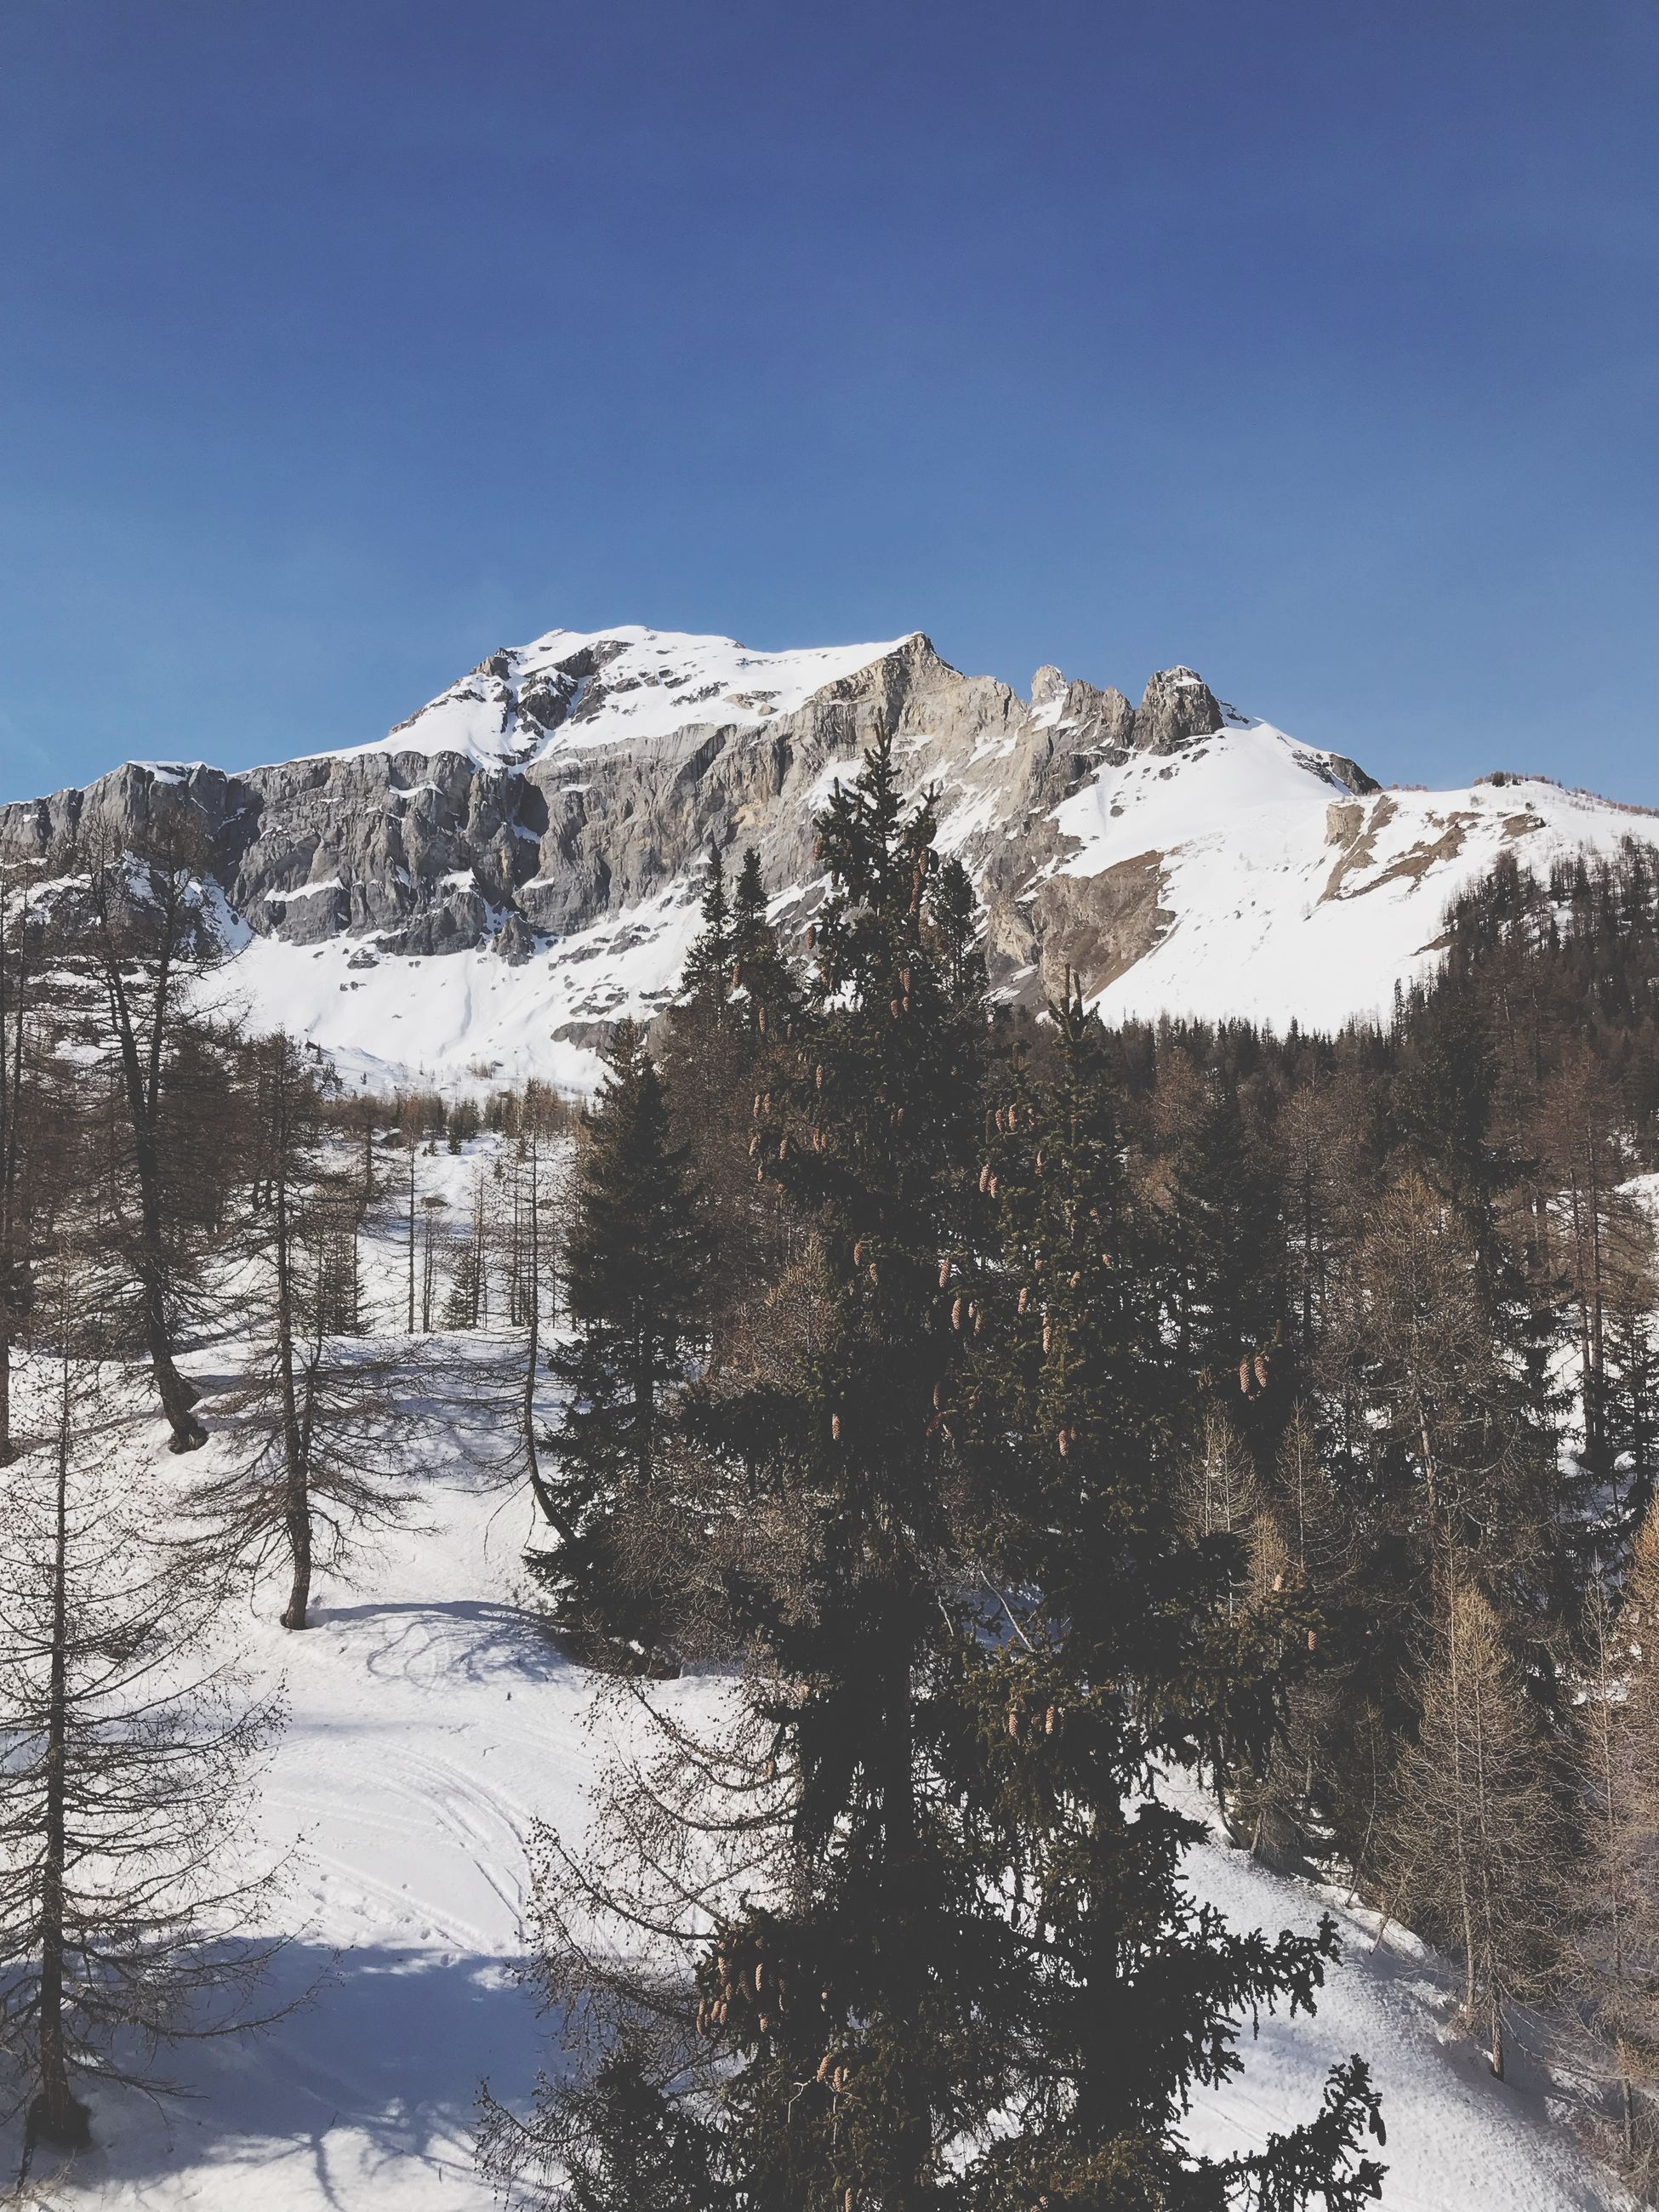 snow, winter, cold temperature, sky, mountain, beauty in nature, scenics - nature, tranquility, tranquil scene, plant, nature, tree, clear sky, snowcapped mountain, non-urban scene, no people, day, environment, blue, outdoors, mountain peak